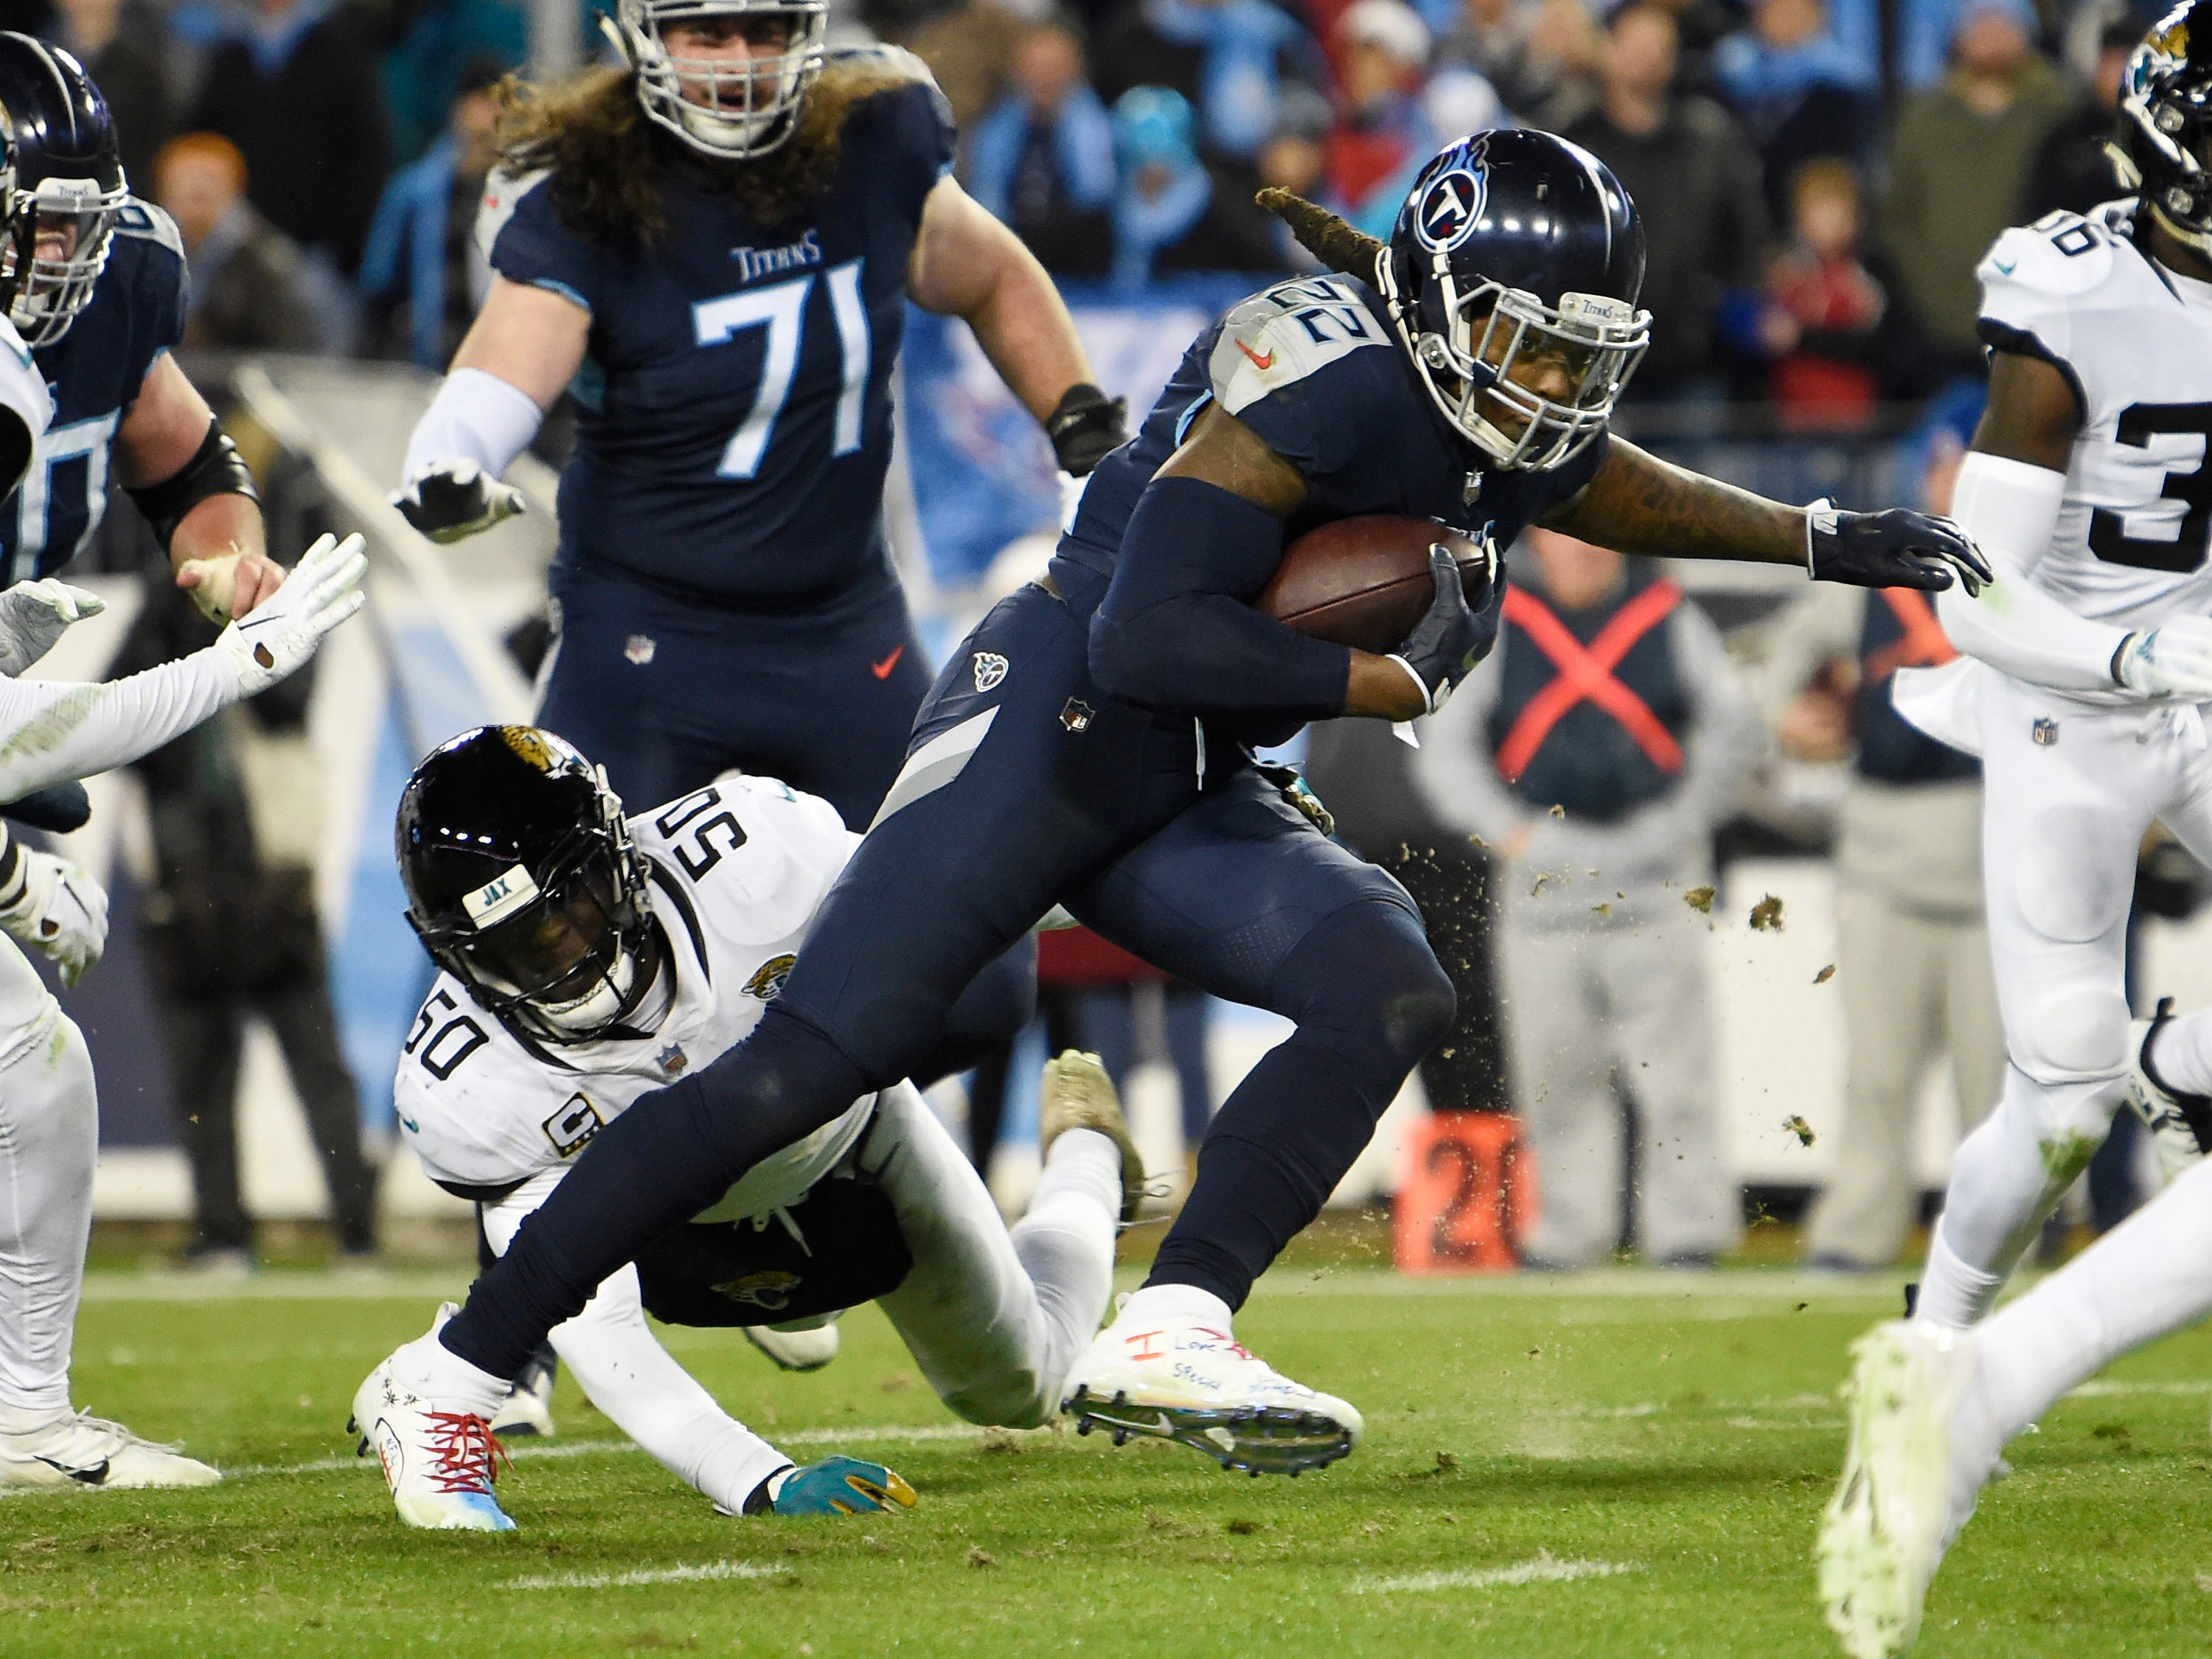 Titans running back Derrick Henry (22) scores his third touchdown of the night in the third quarter at Nissan Stadium Thursday, Dec. 6, 2018, in Nashville, Tenn.